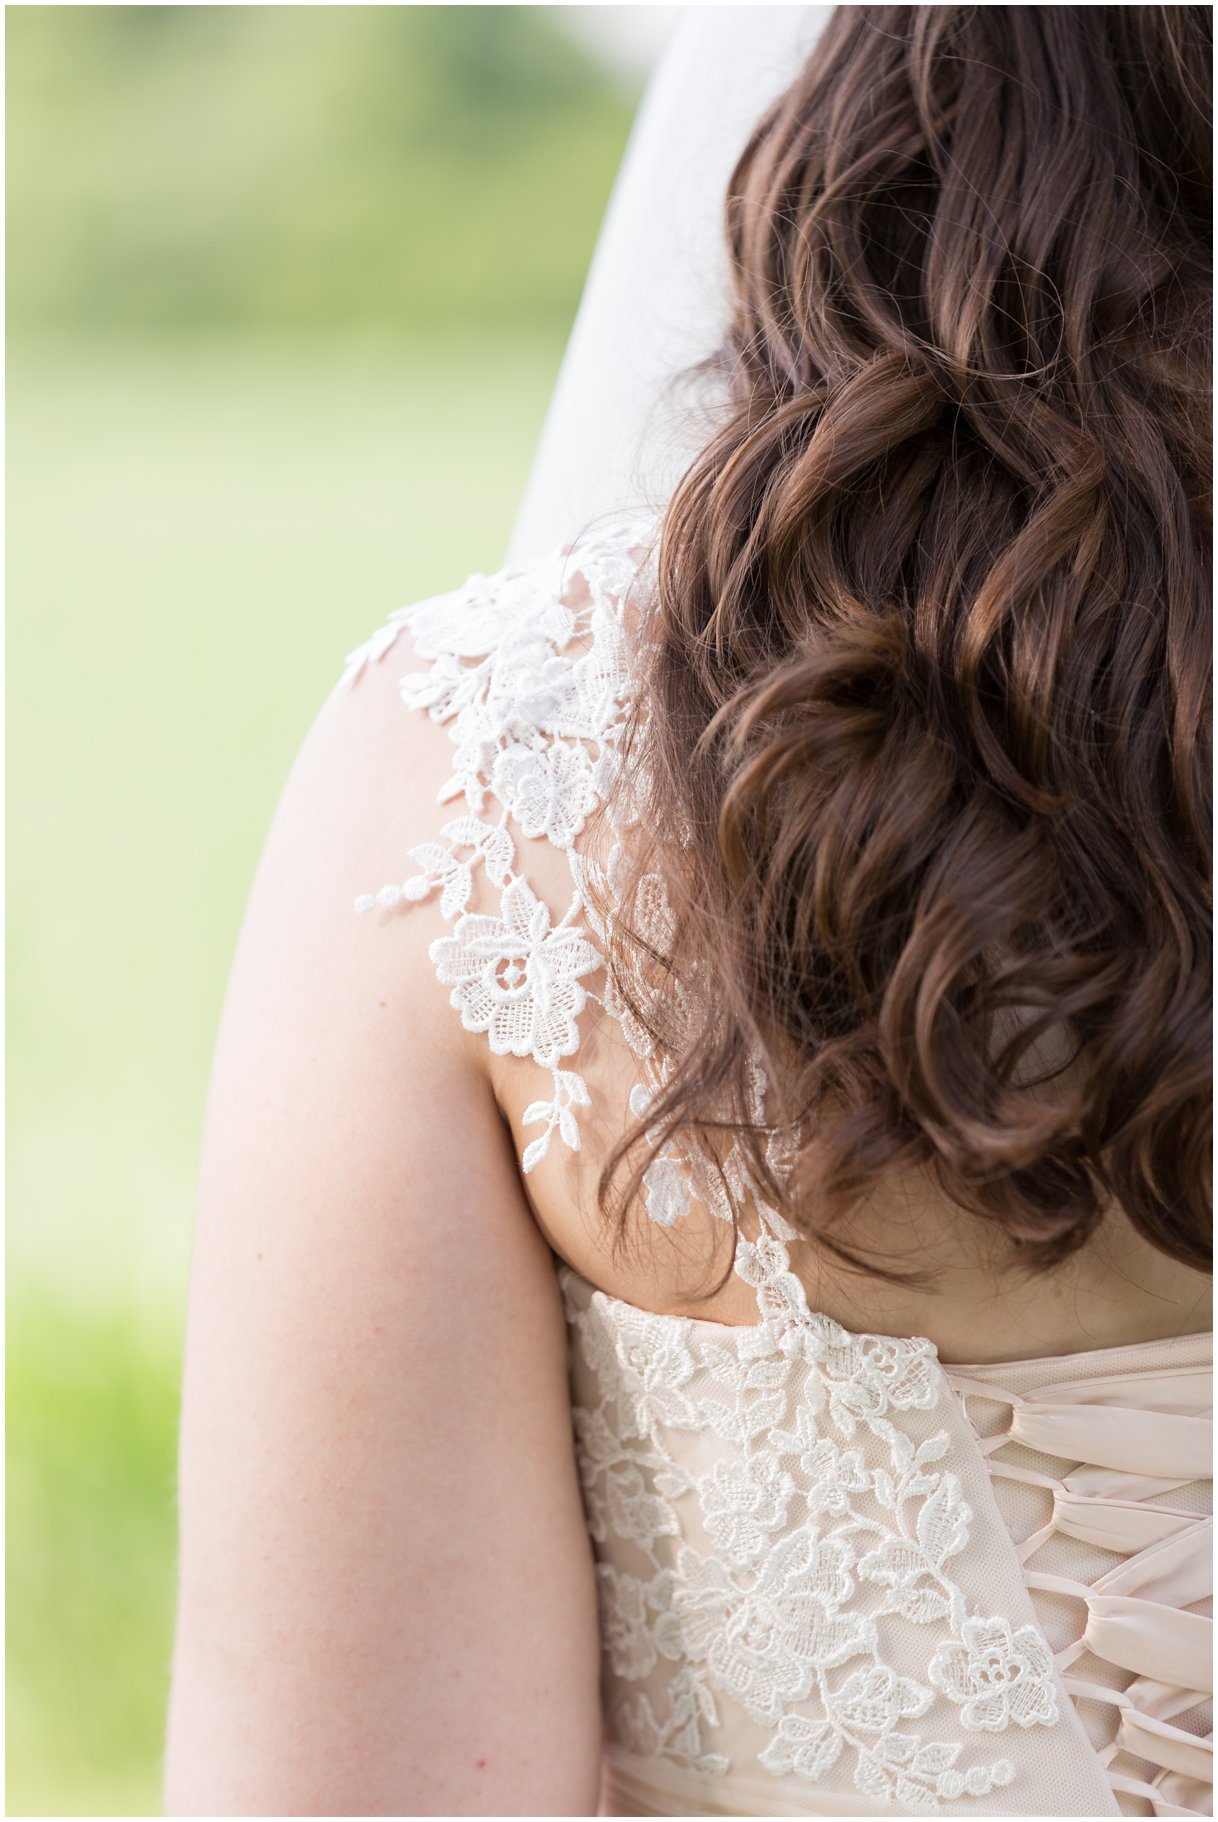 Bridal gown details at Pheasant Run Bed and Breakfast Lancaster PA on wedding day photo